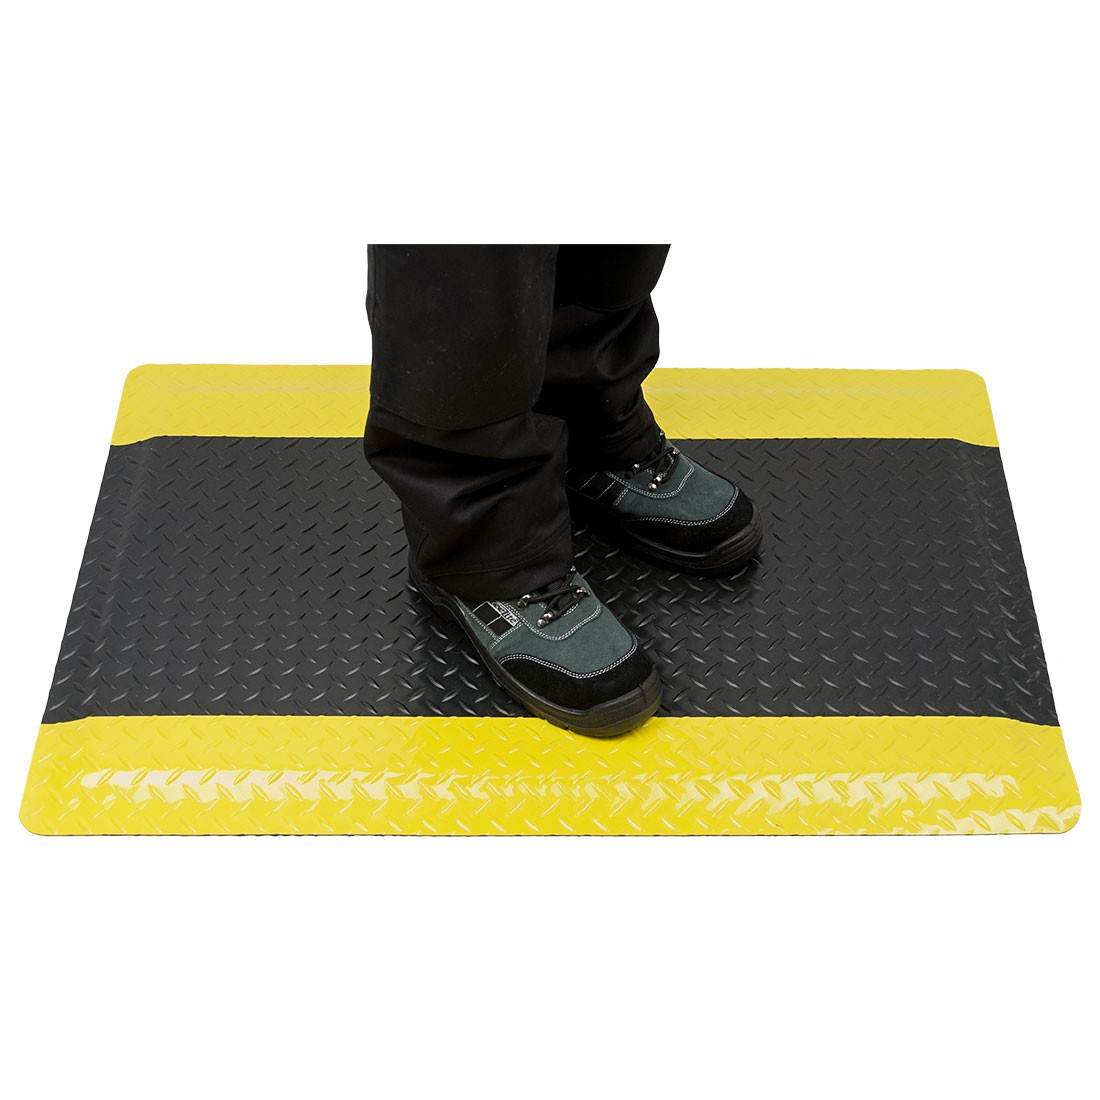 764051  ALFOMBRA MT50 - Alfombrilla industrial Anti Fatiga